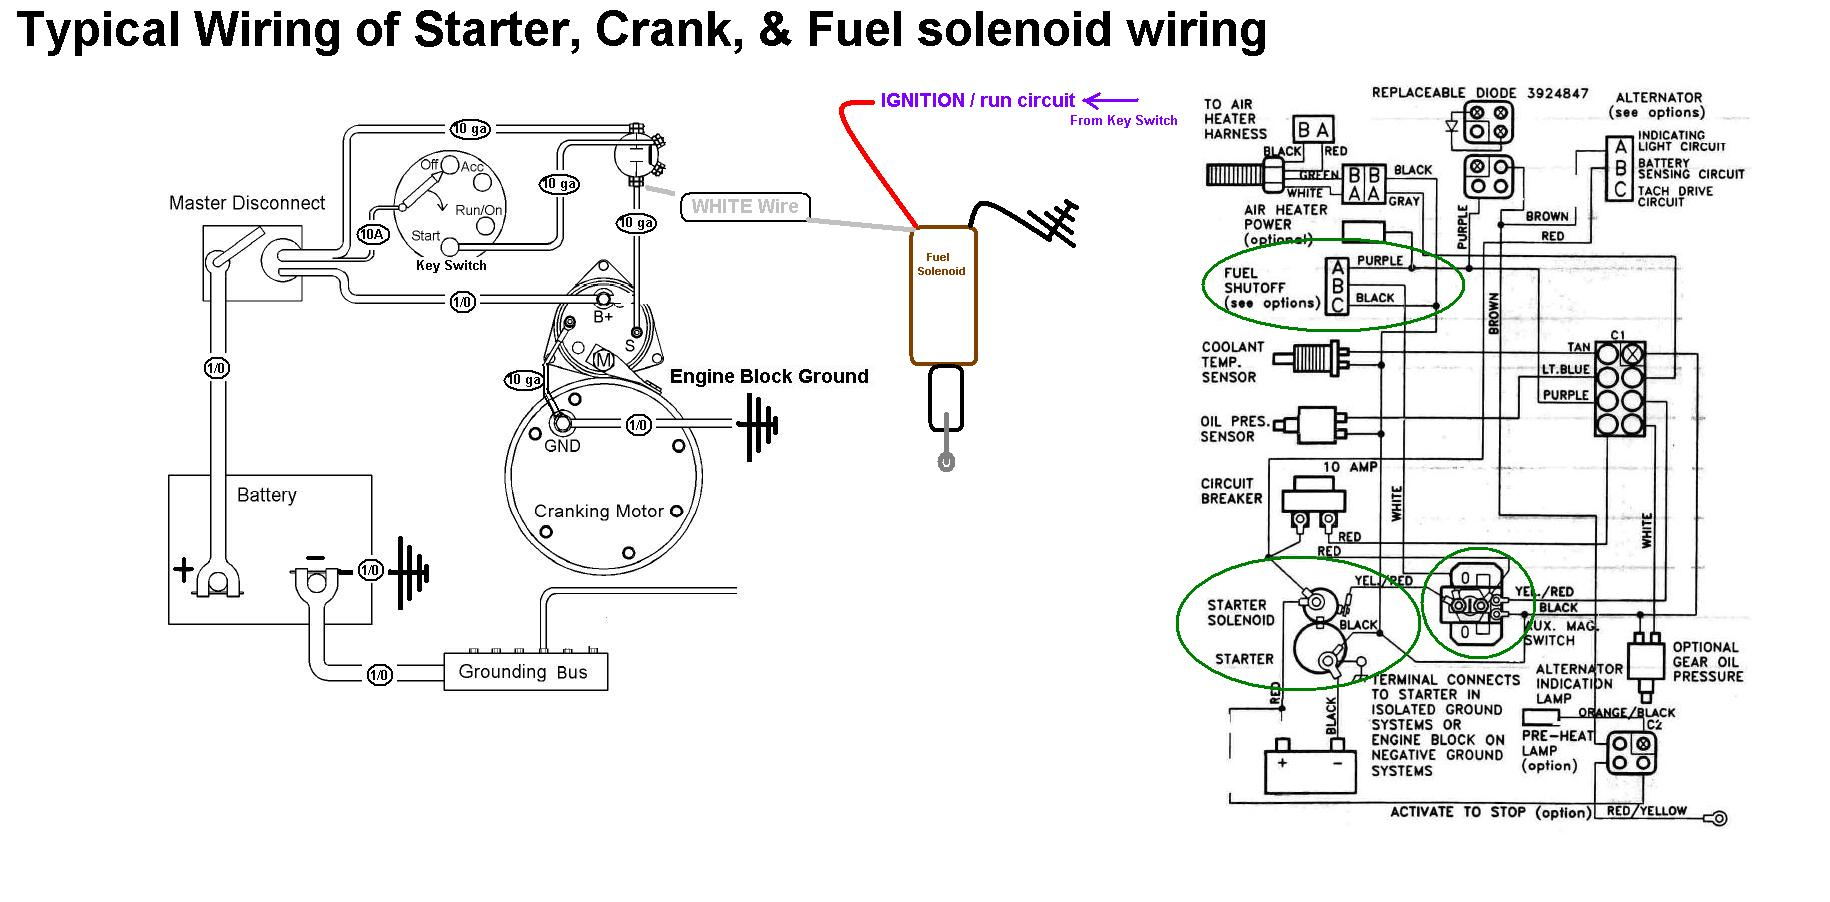 Starter Crank Fuel Shutoff Solenoid Wiring on 3 way switch wiring diagram parts list